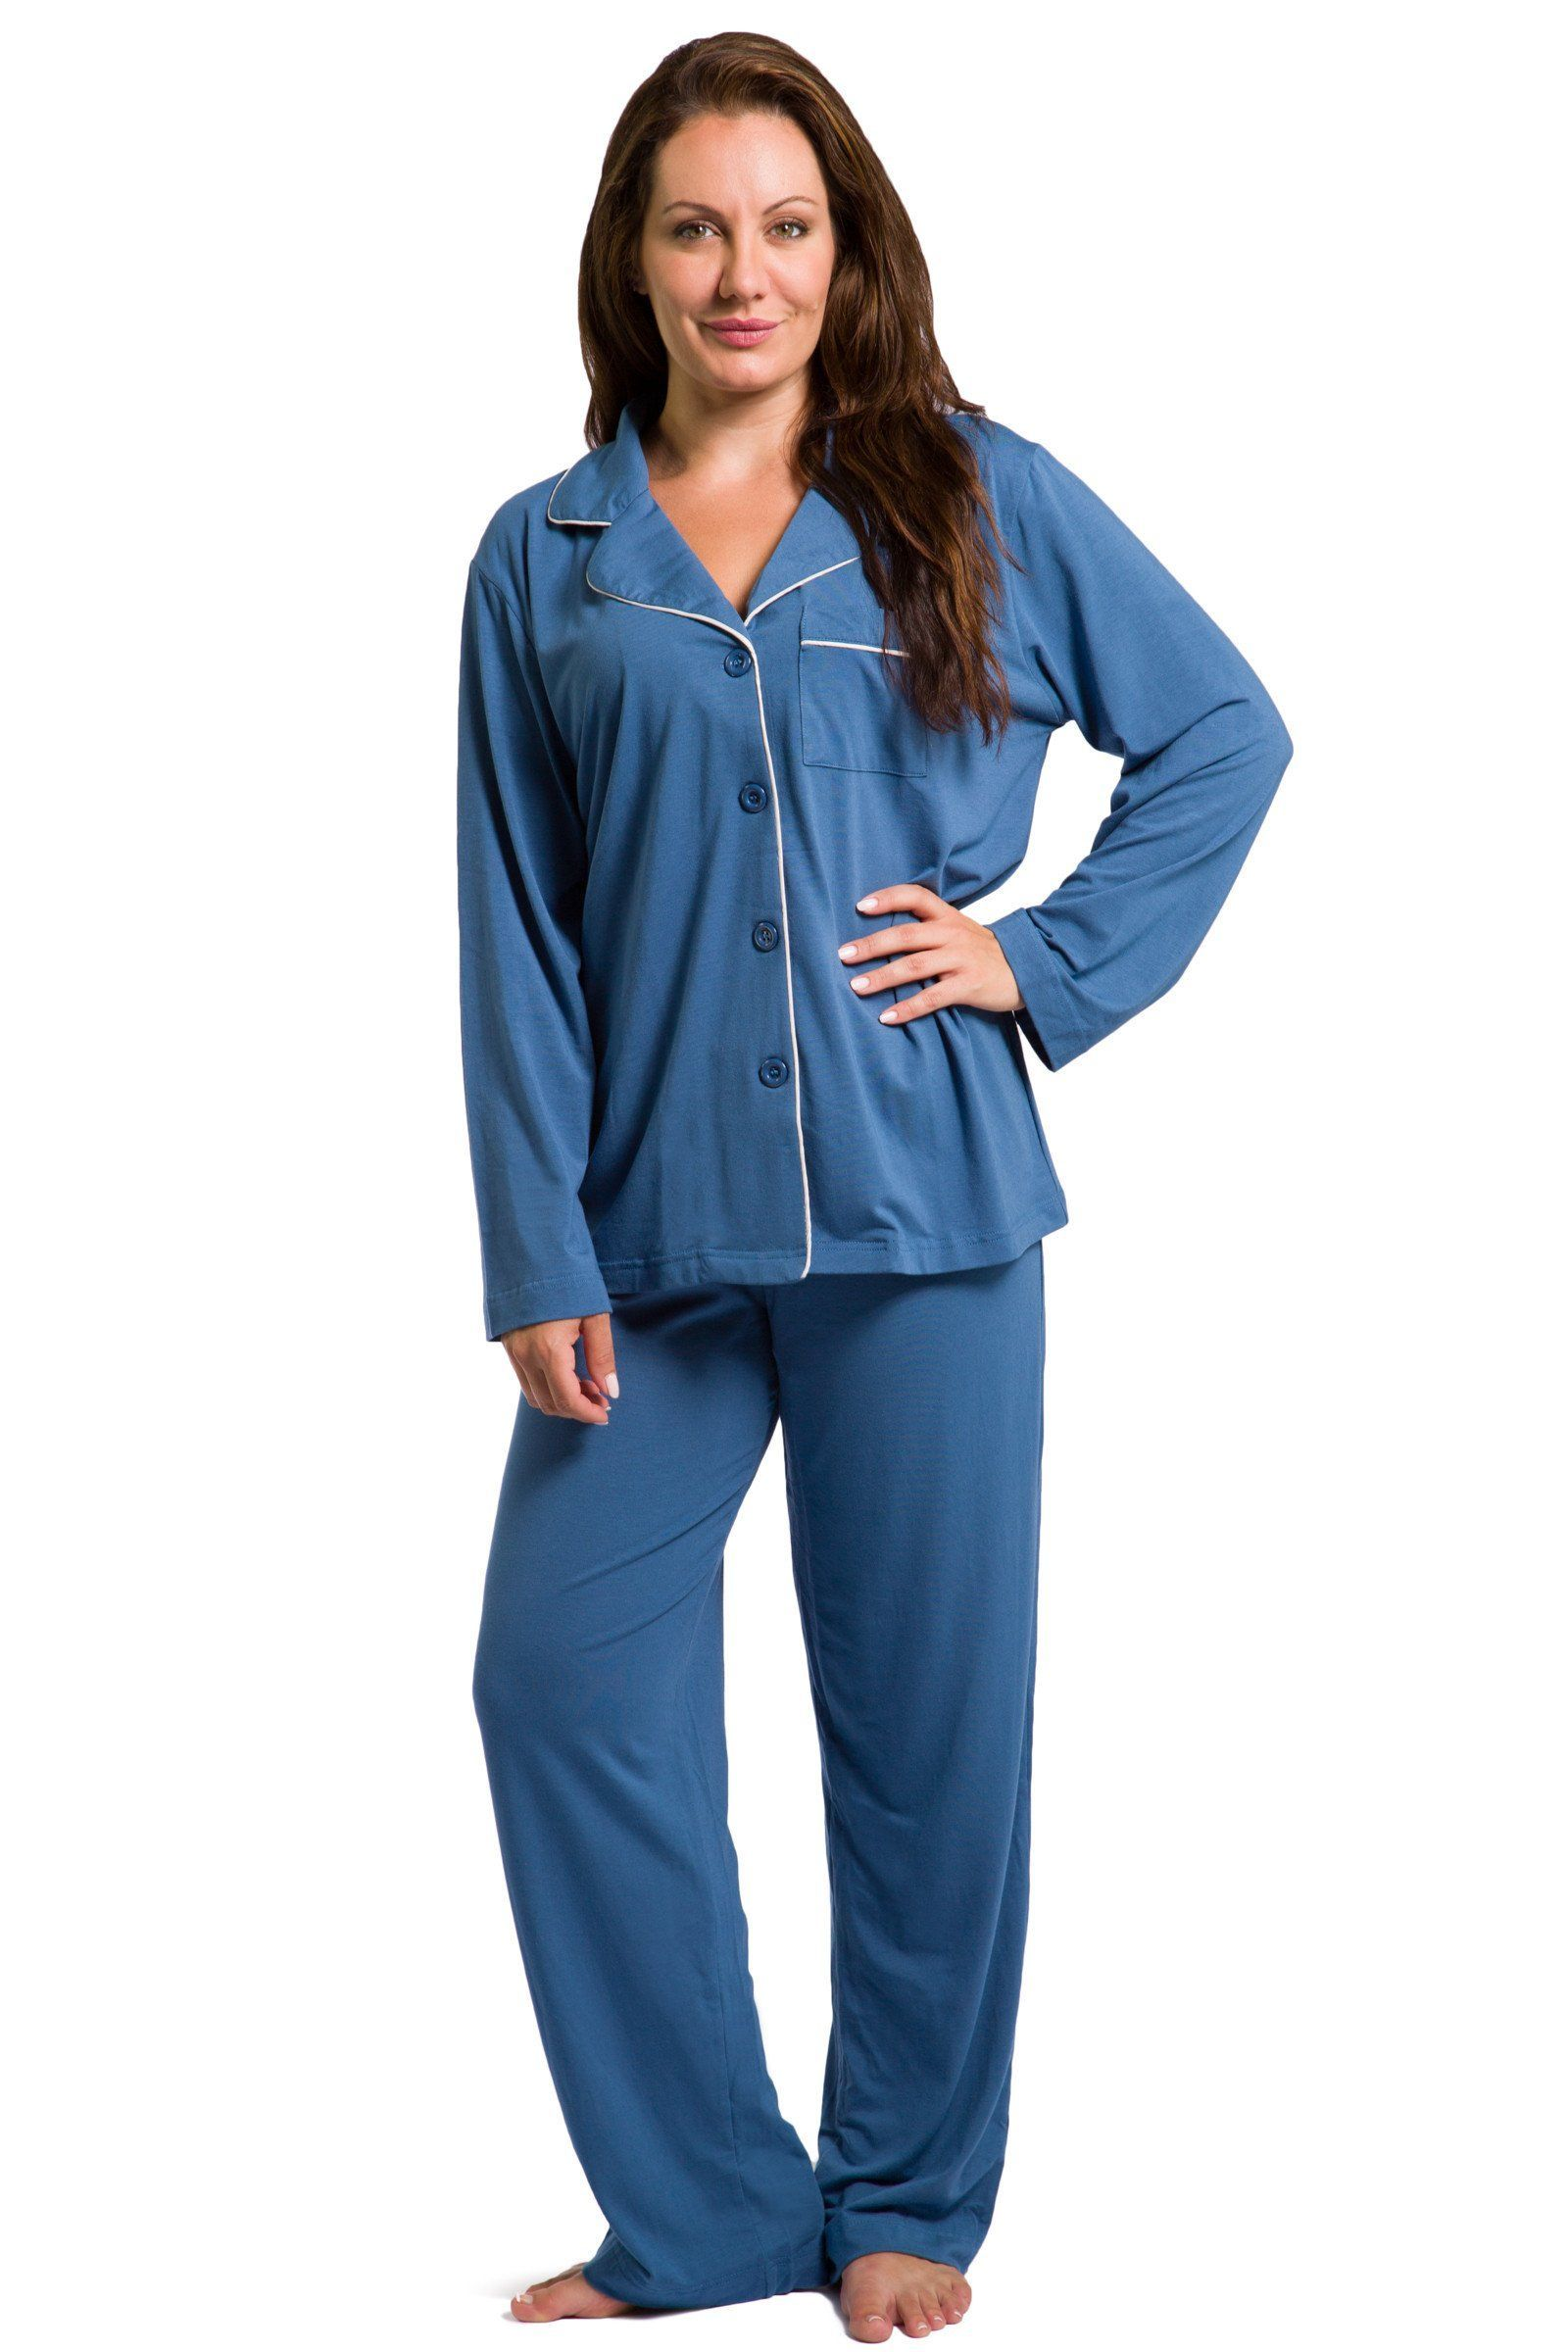 Womens Pjs | Superhero Pjs for Women | Cotton Pjs for Women